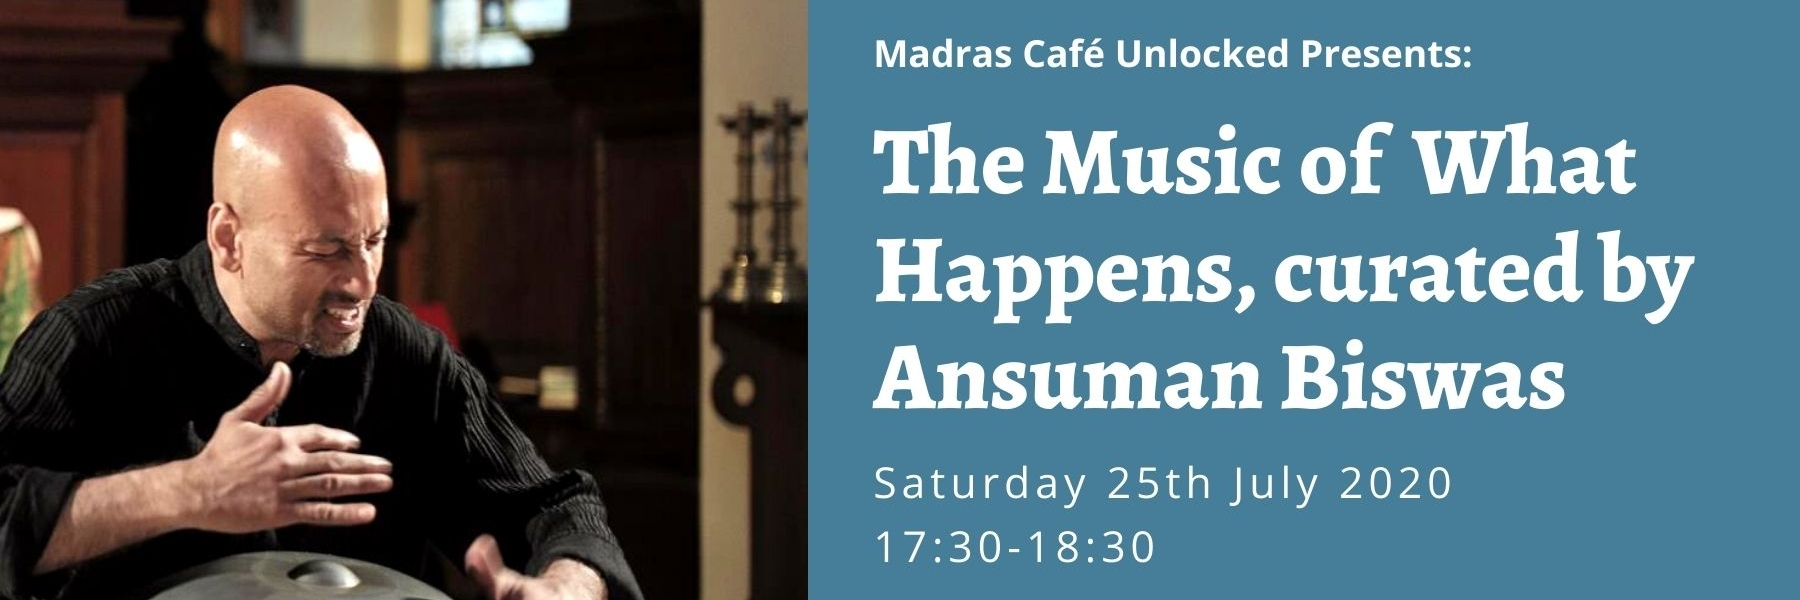 Madras Cafe Unlocked 2020: The Music of What Happens curated by Ansuman Biswas